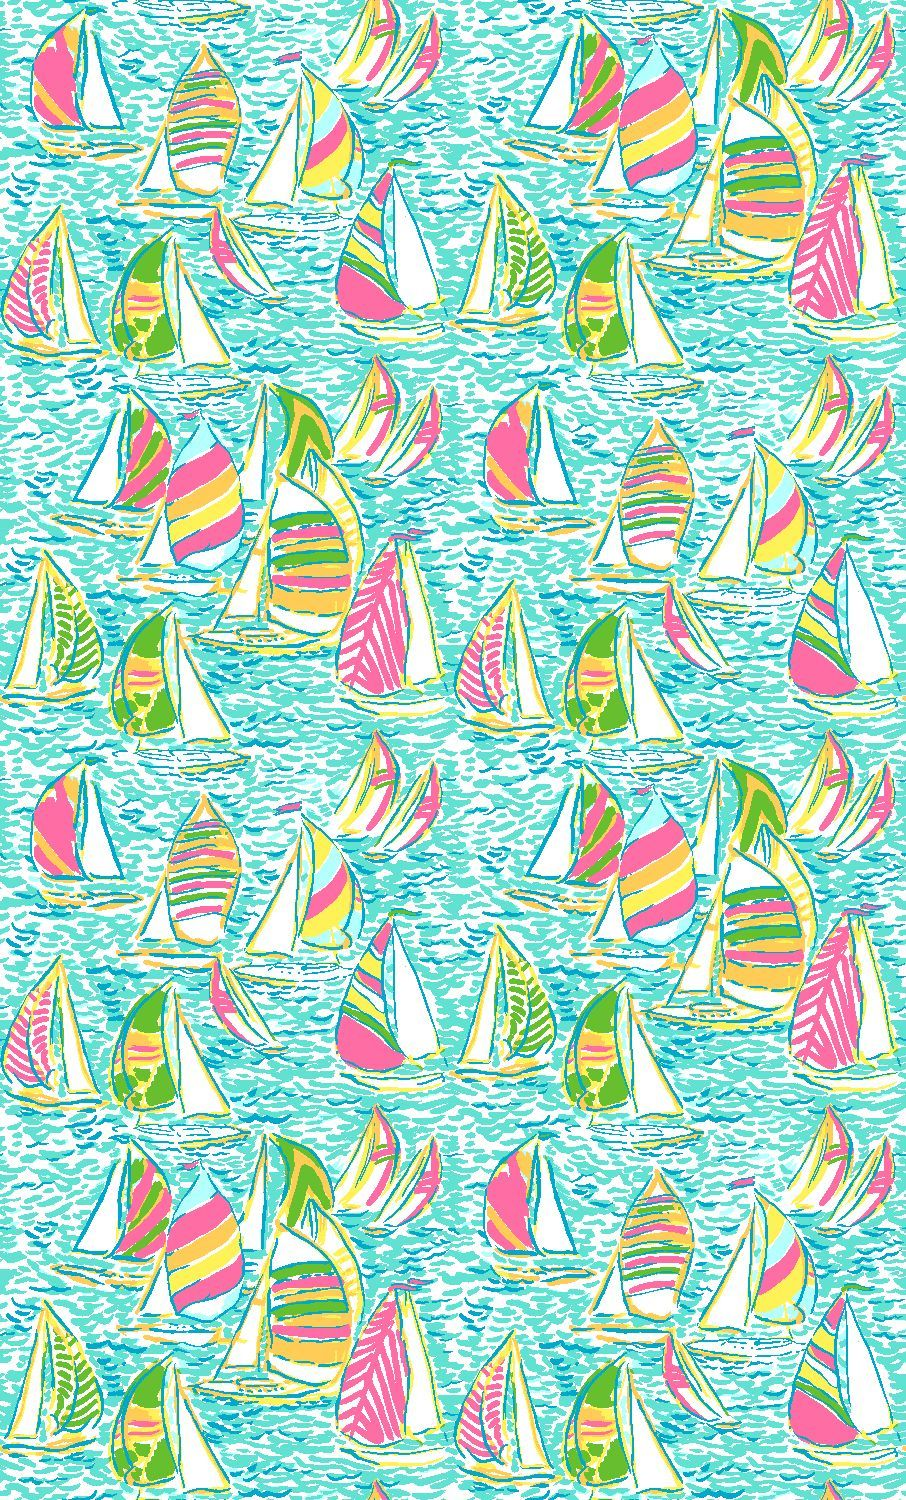 906x1500 Pin by Olivia Blaha on Pretty backgrounds | Pinterest | Wallpaper ...